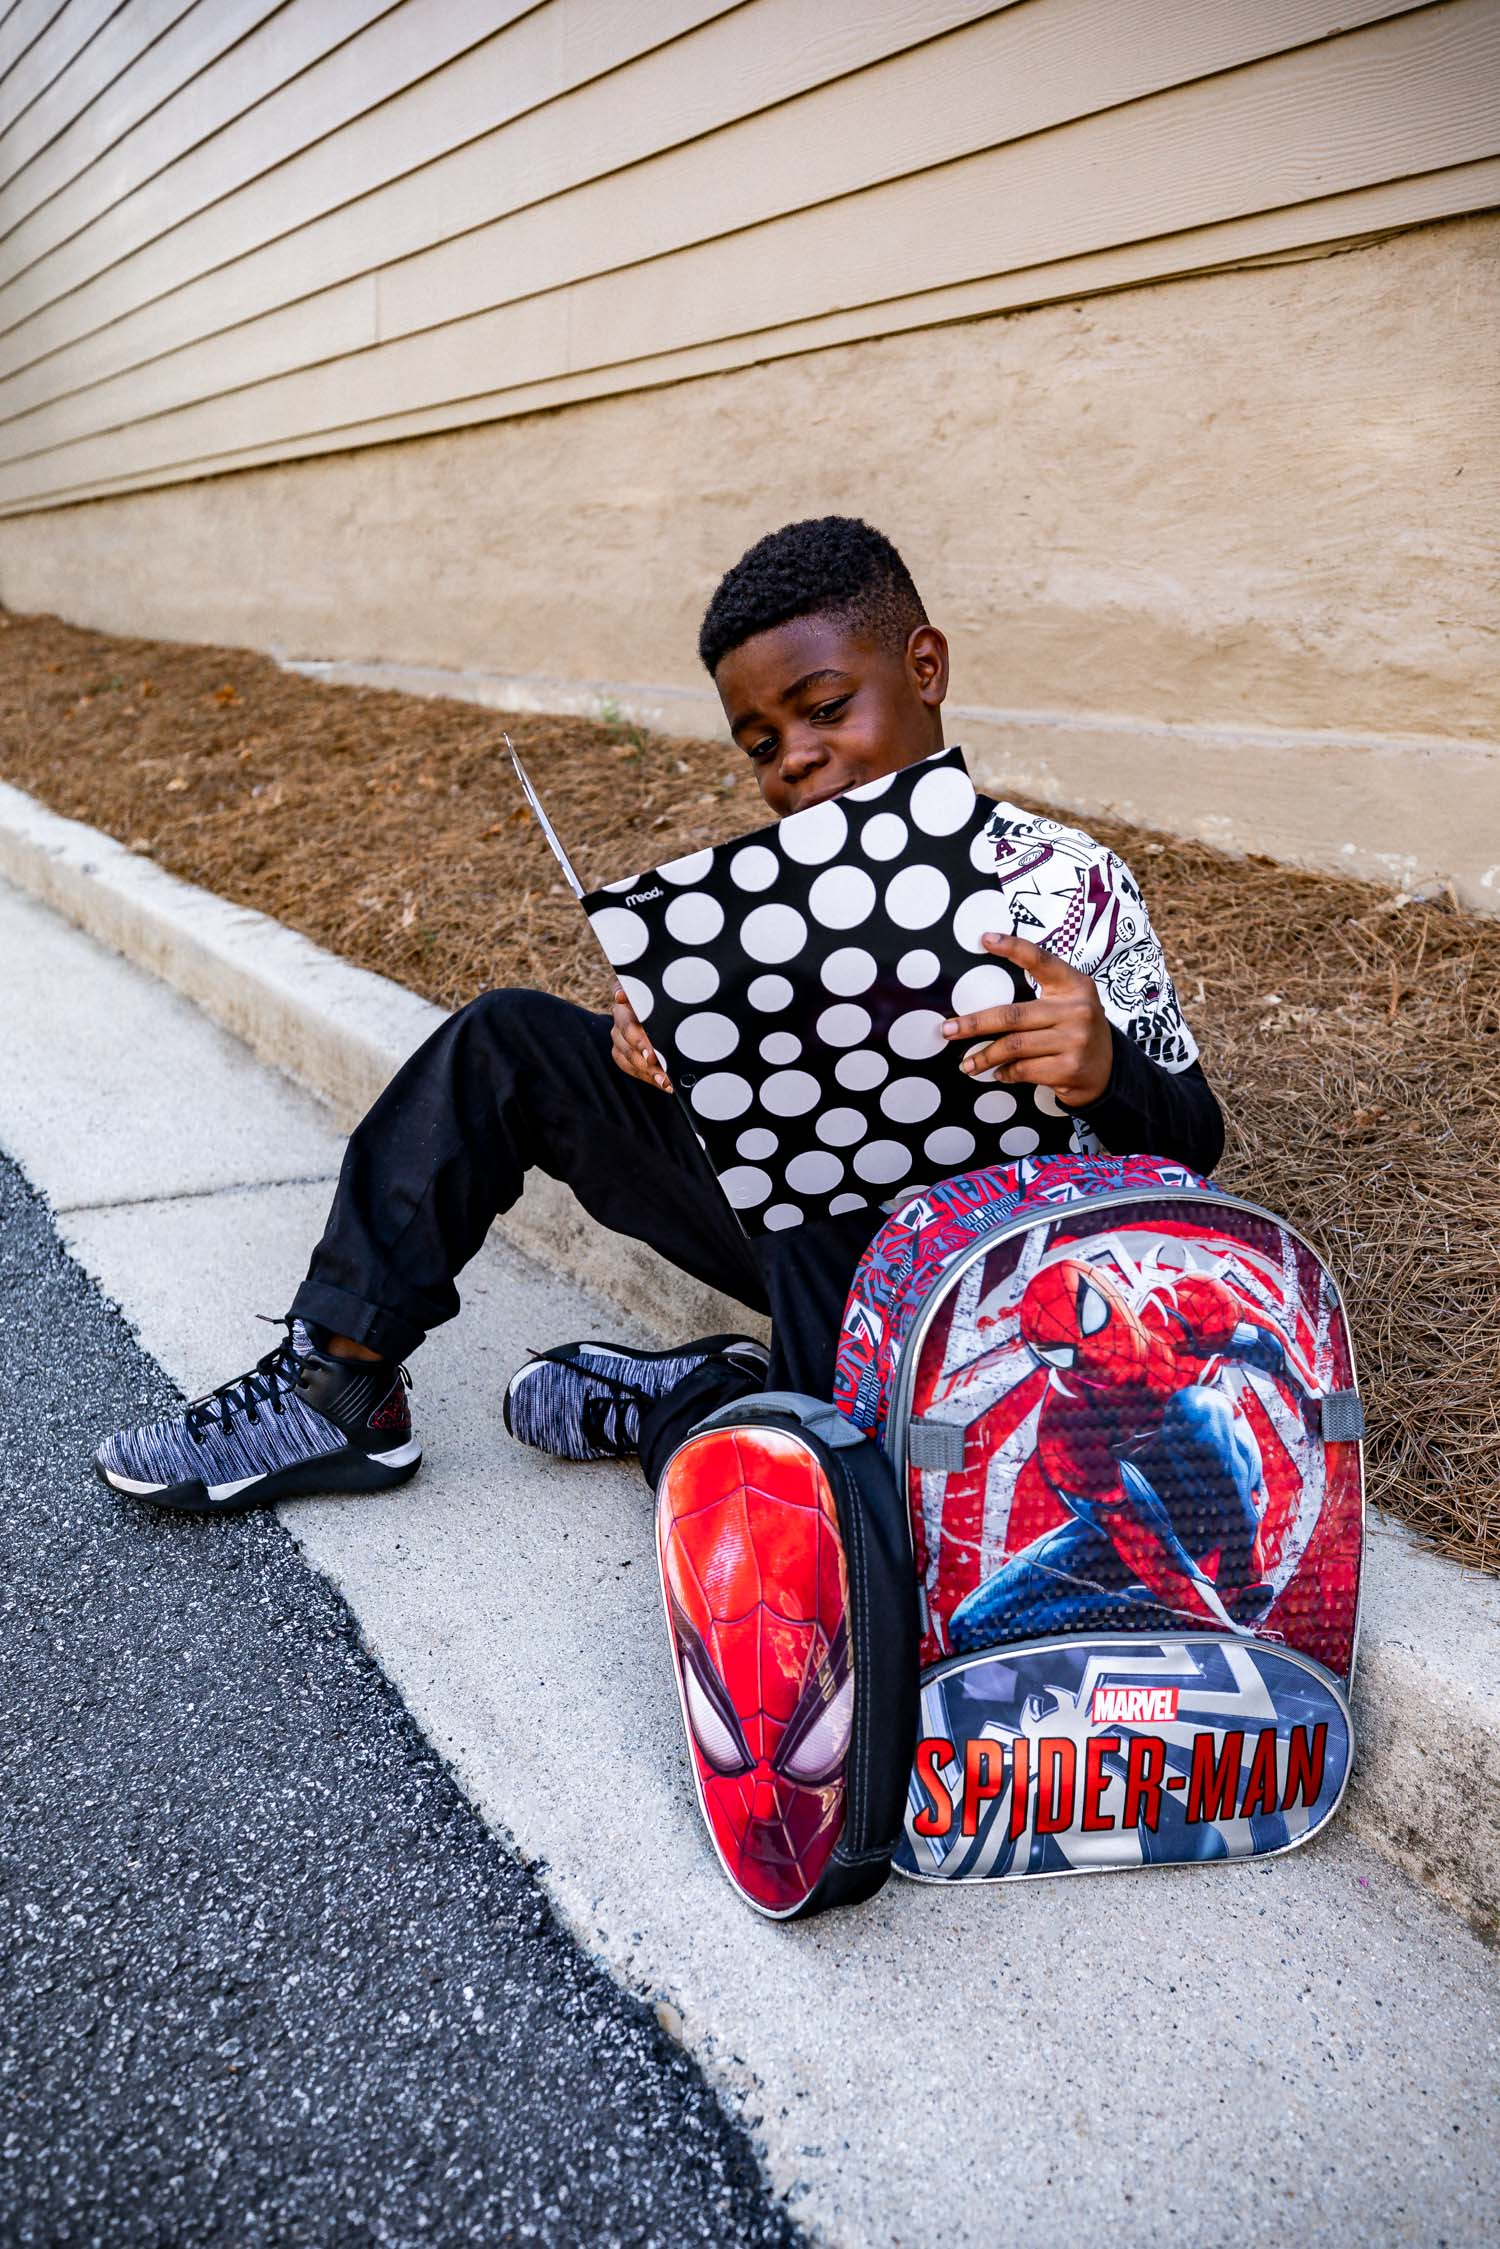 back to school supplies from walmart, atlanta fashion and lifestyle blogger monica awe-etuk's kids getting ready for bts with walmart, jojo siwa outfit and kids supplies at walmart, back to school supplies